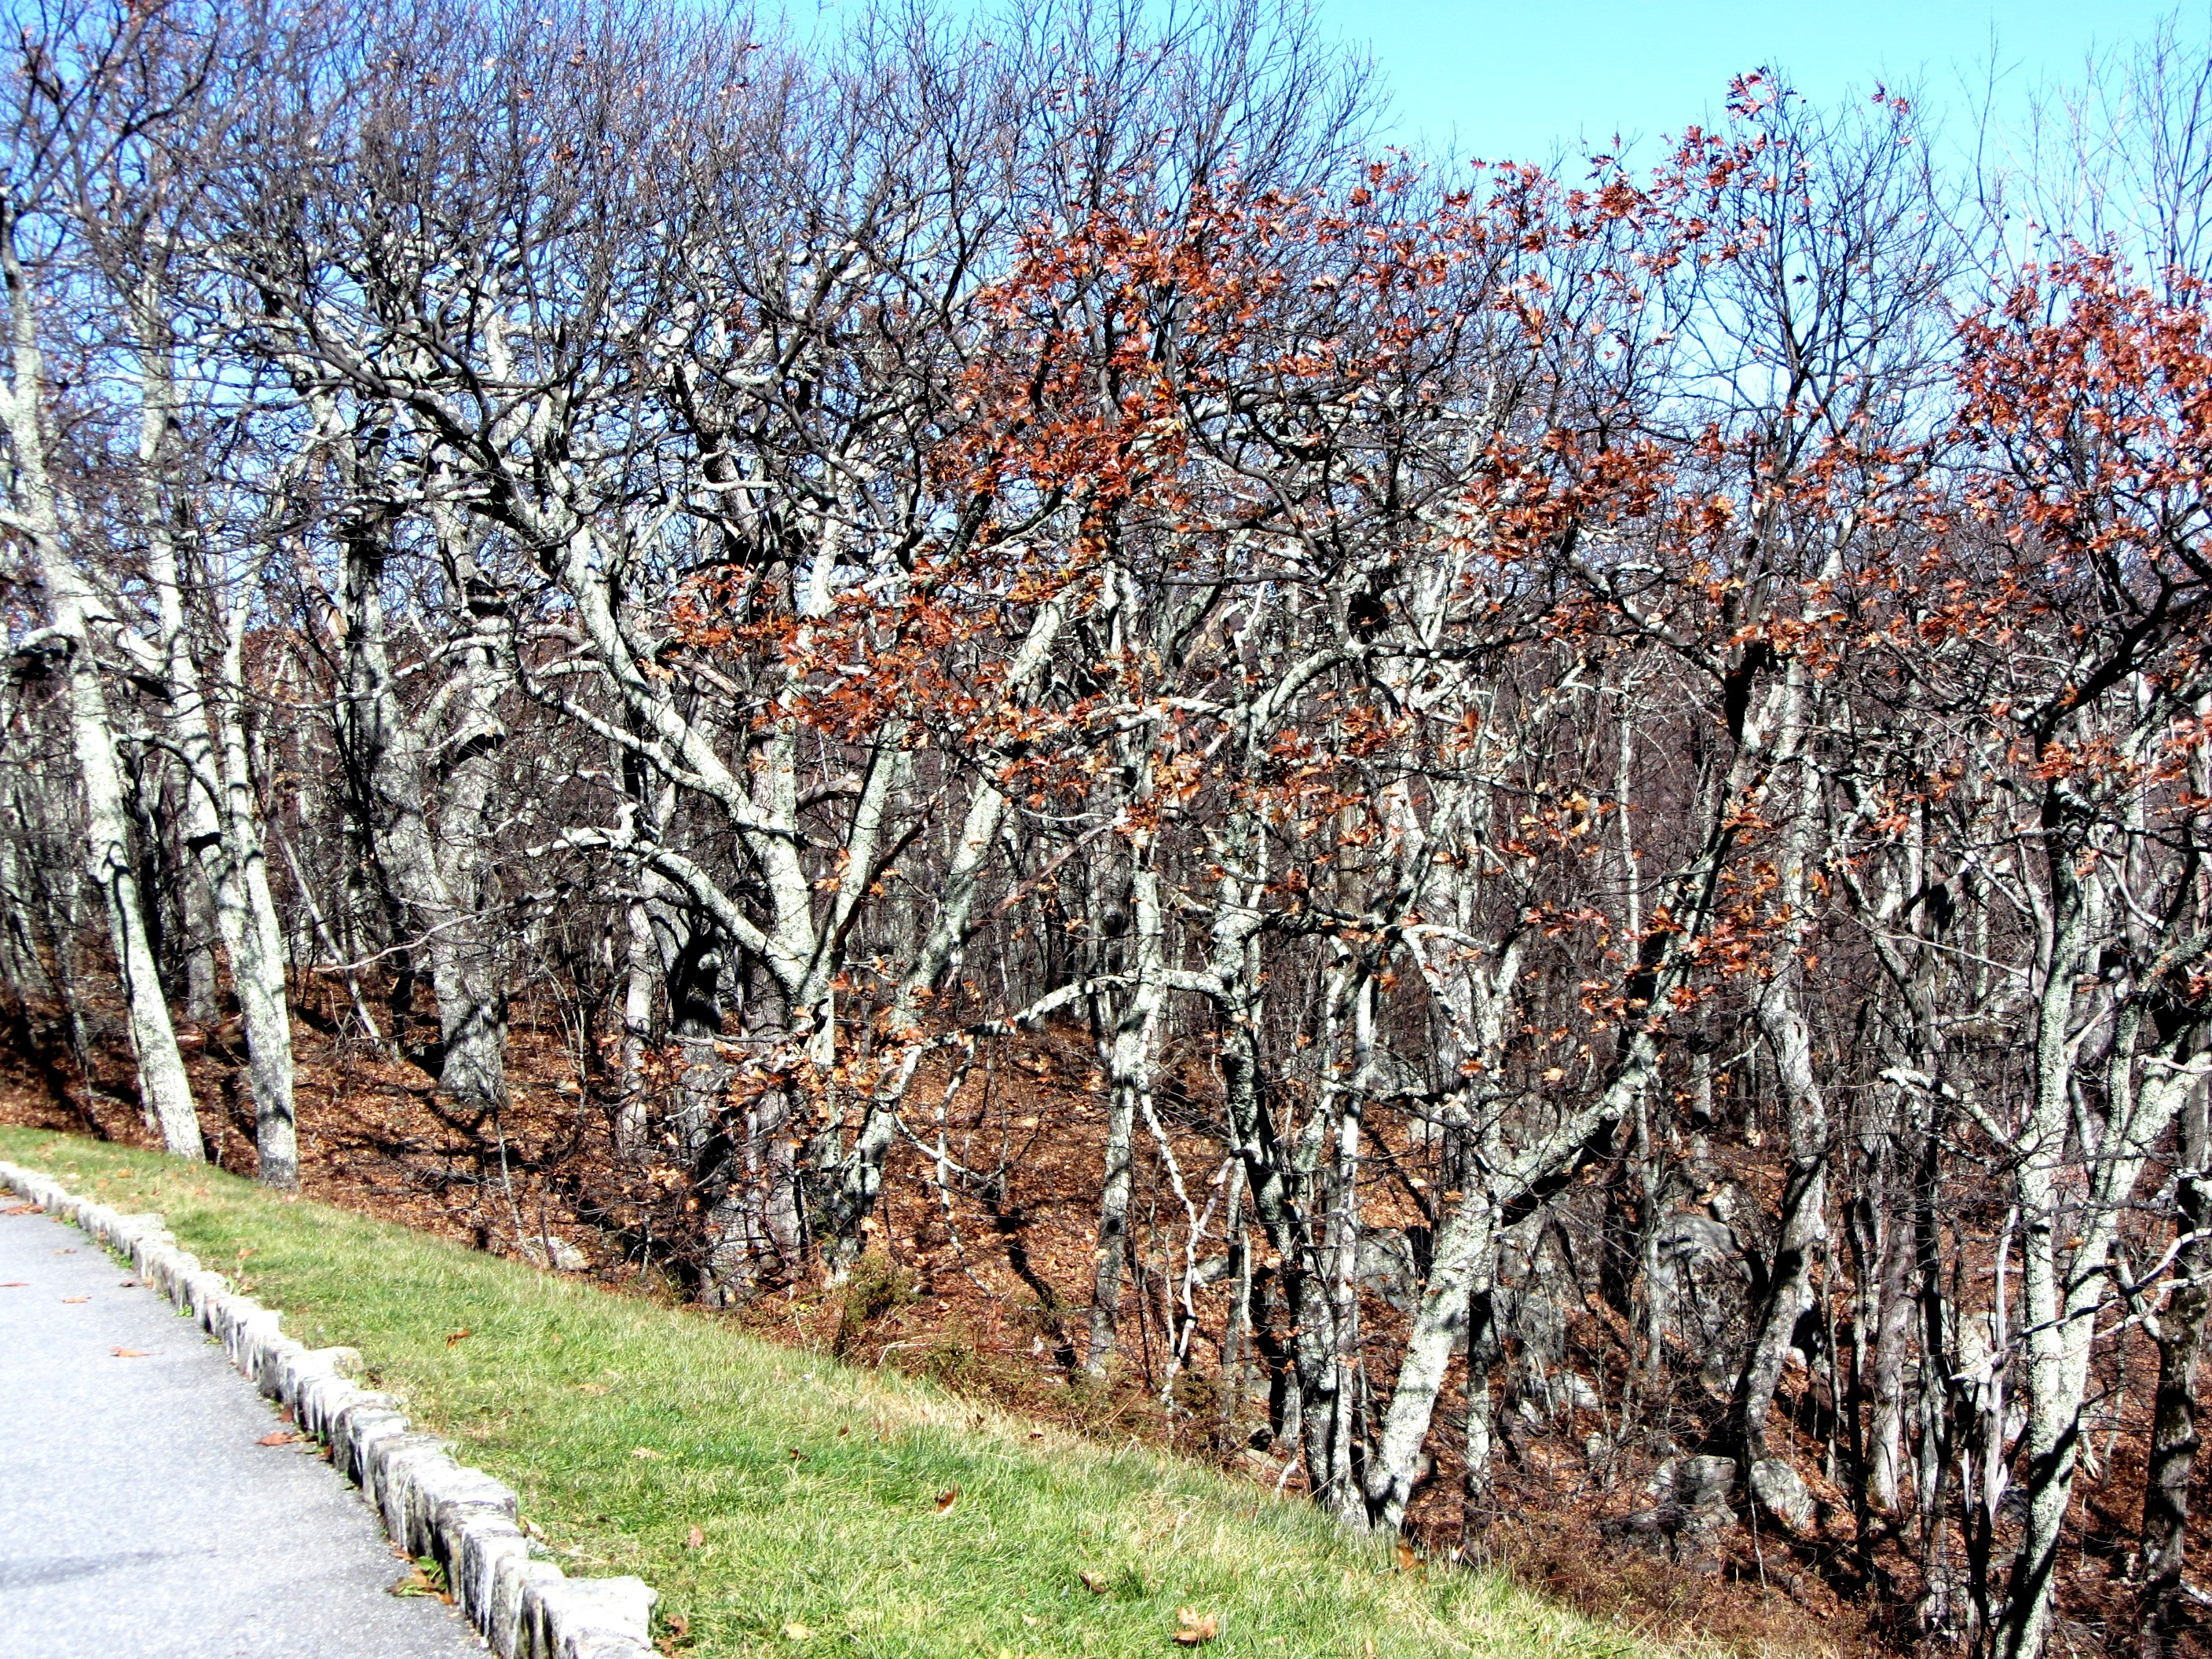 These Blue Ridge Parkway trees are still beautiful even after losing their leaves in November 2011.